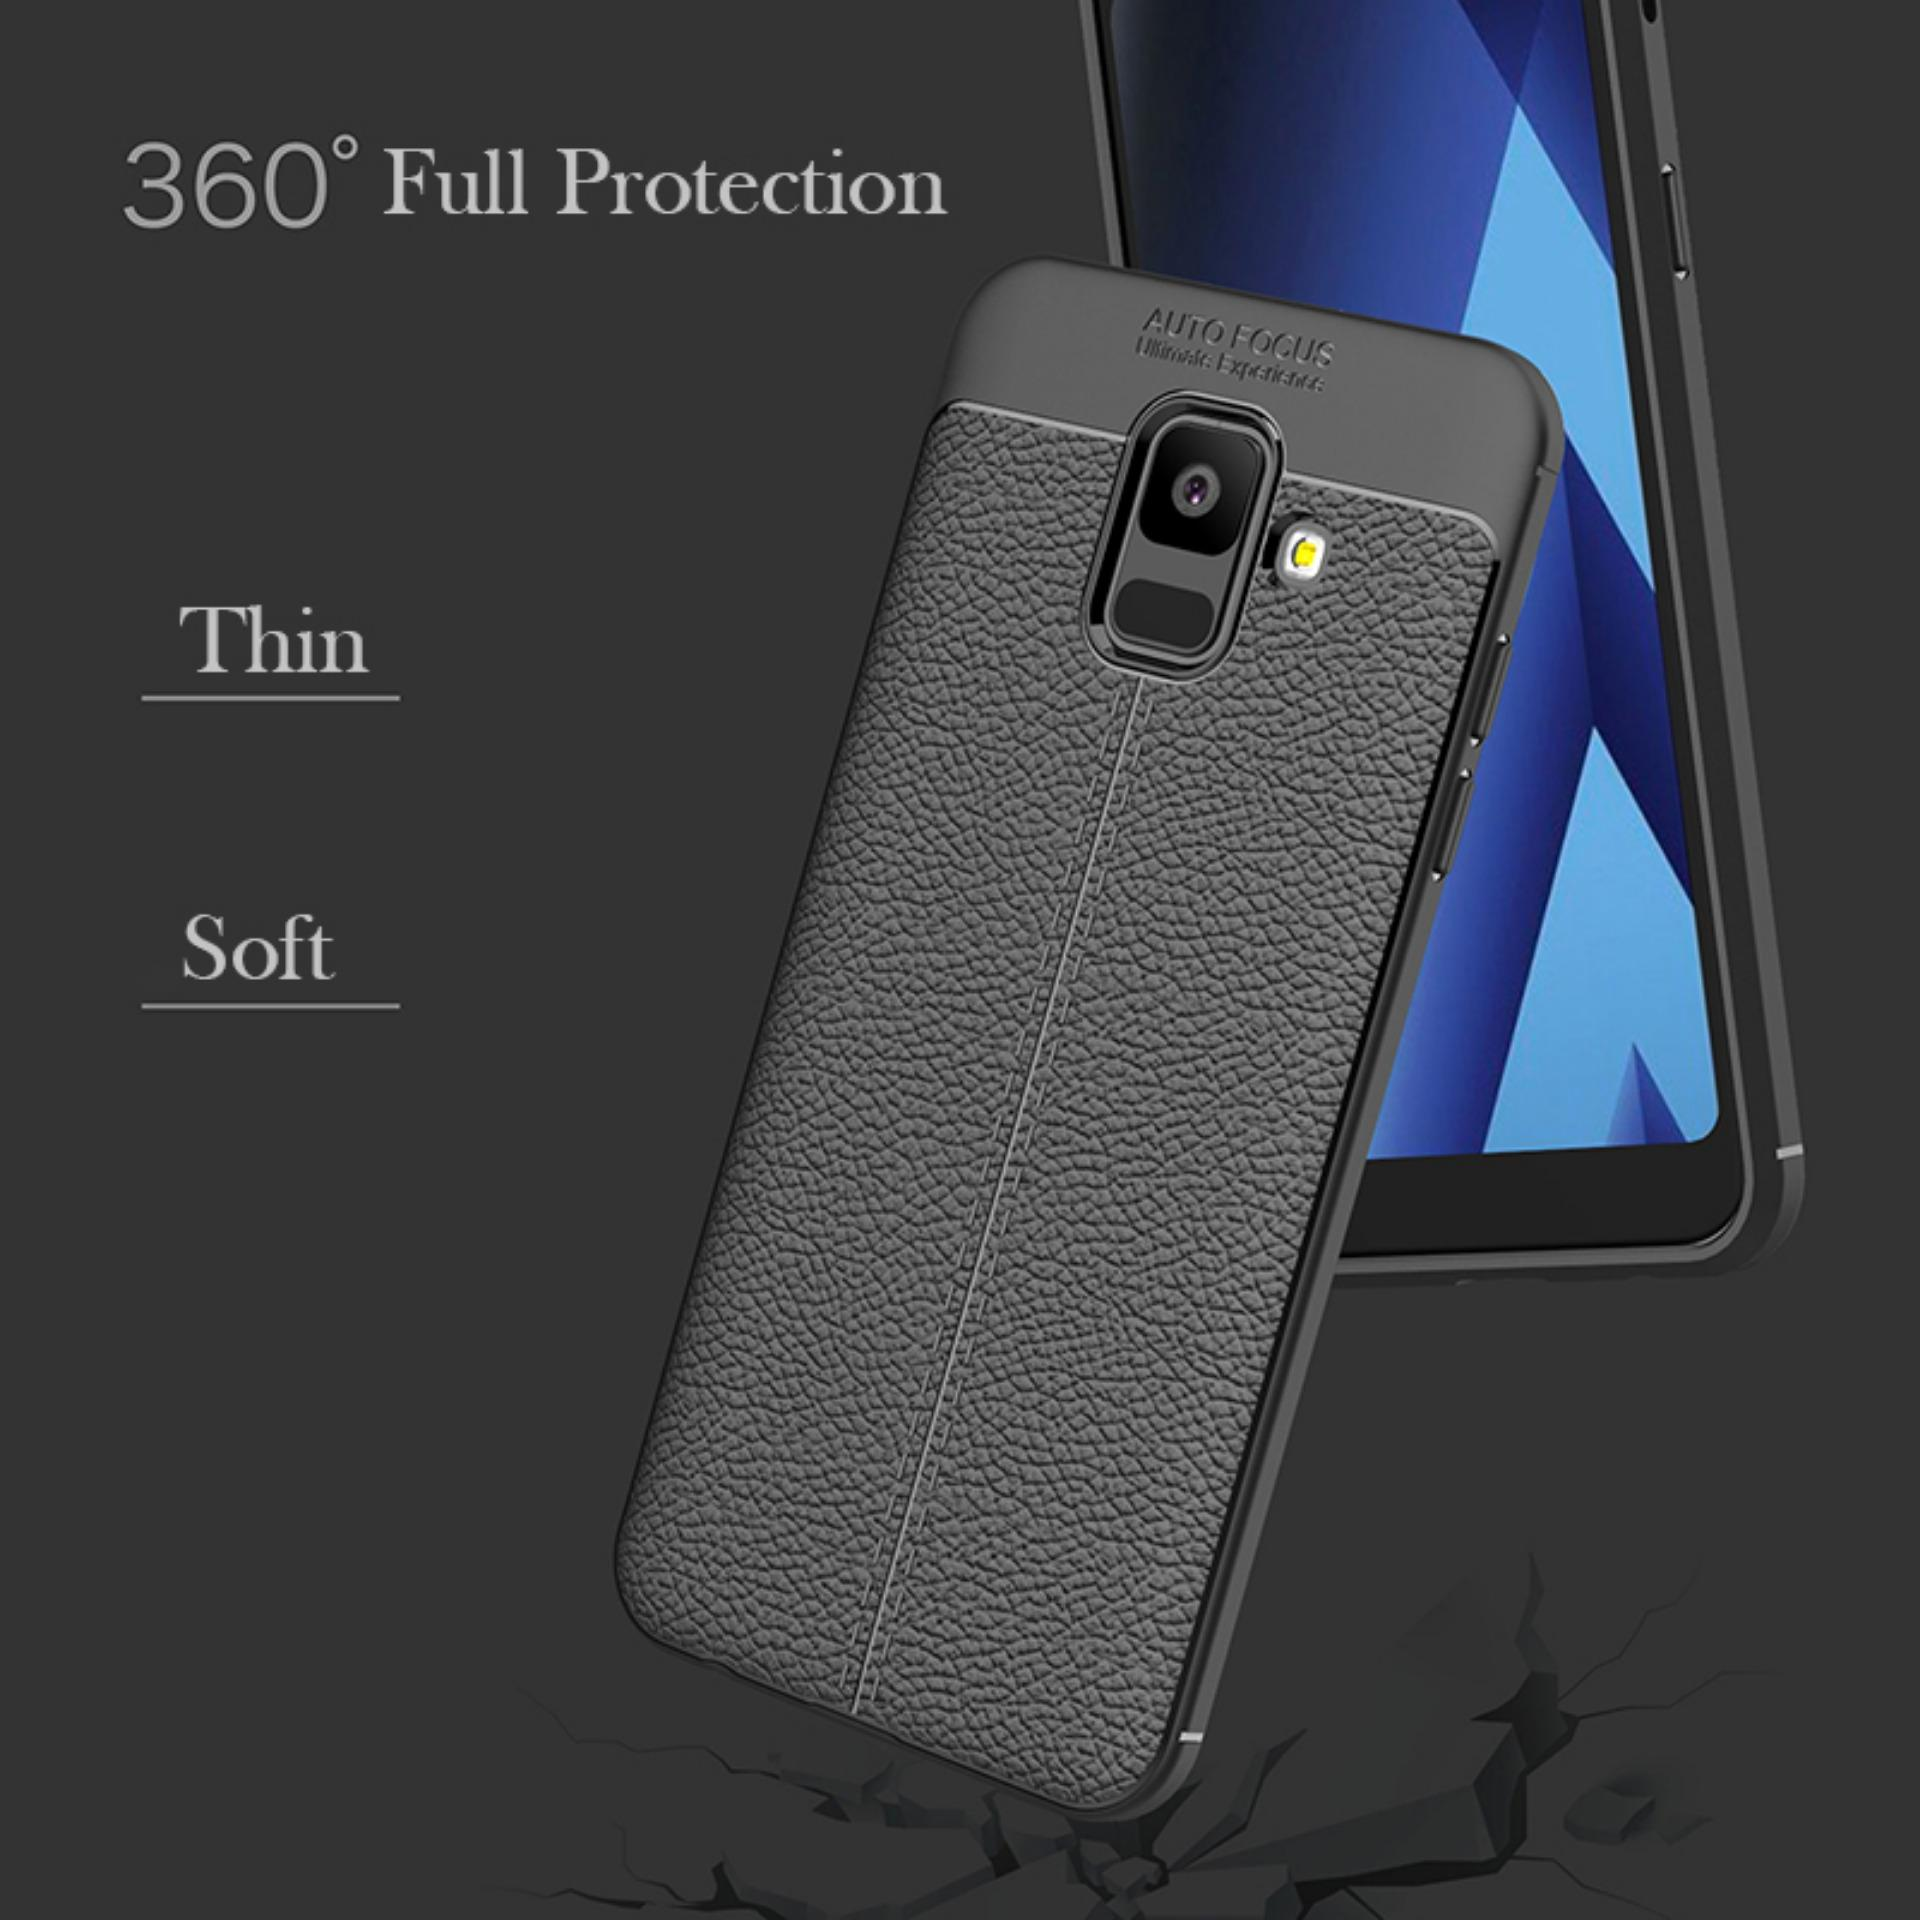 ... Accessories Hp Premium Ultimate Shockproof Leather Case For Samsung Galaxy A6 2018 - Black - 4